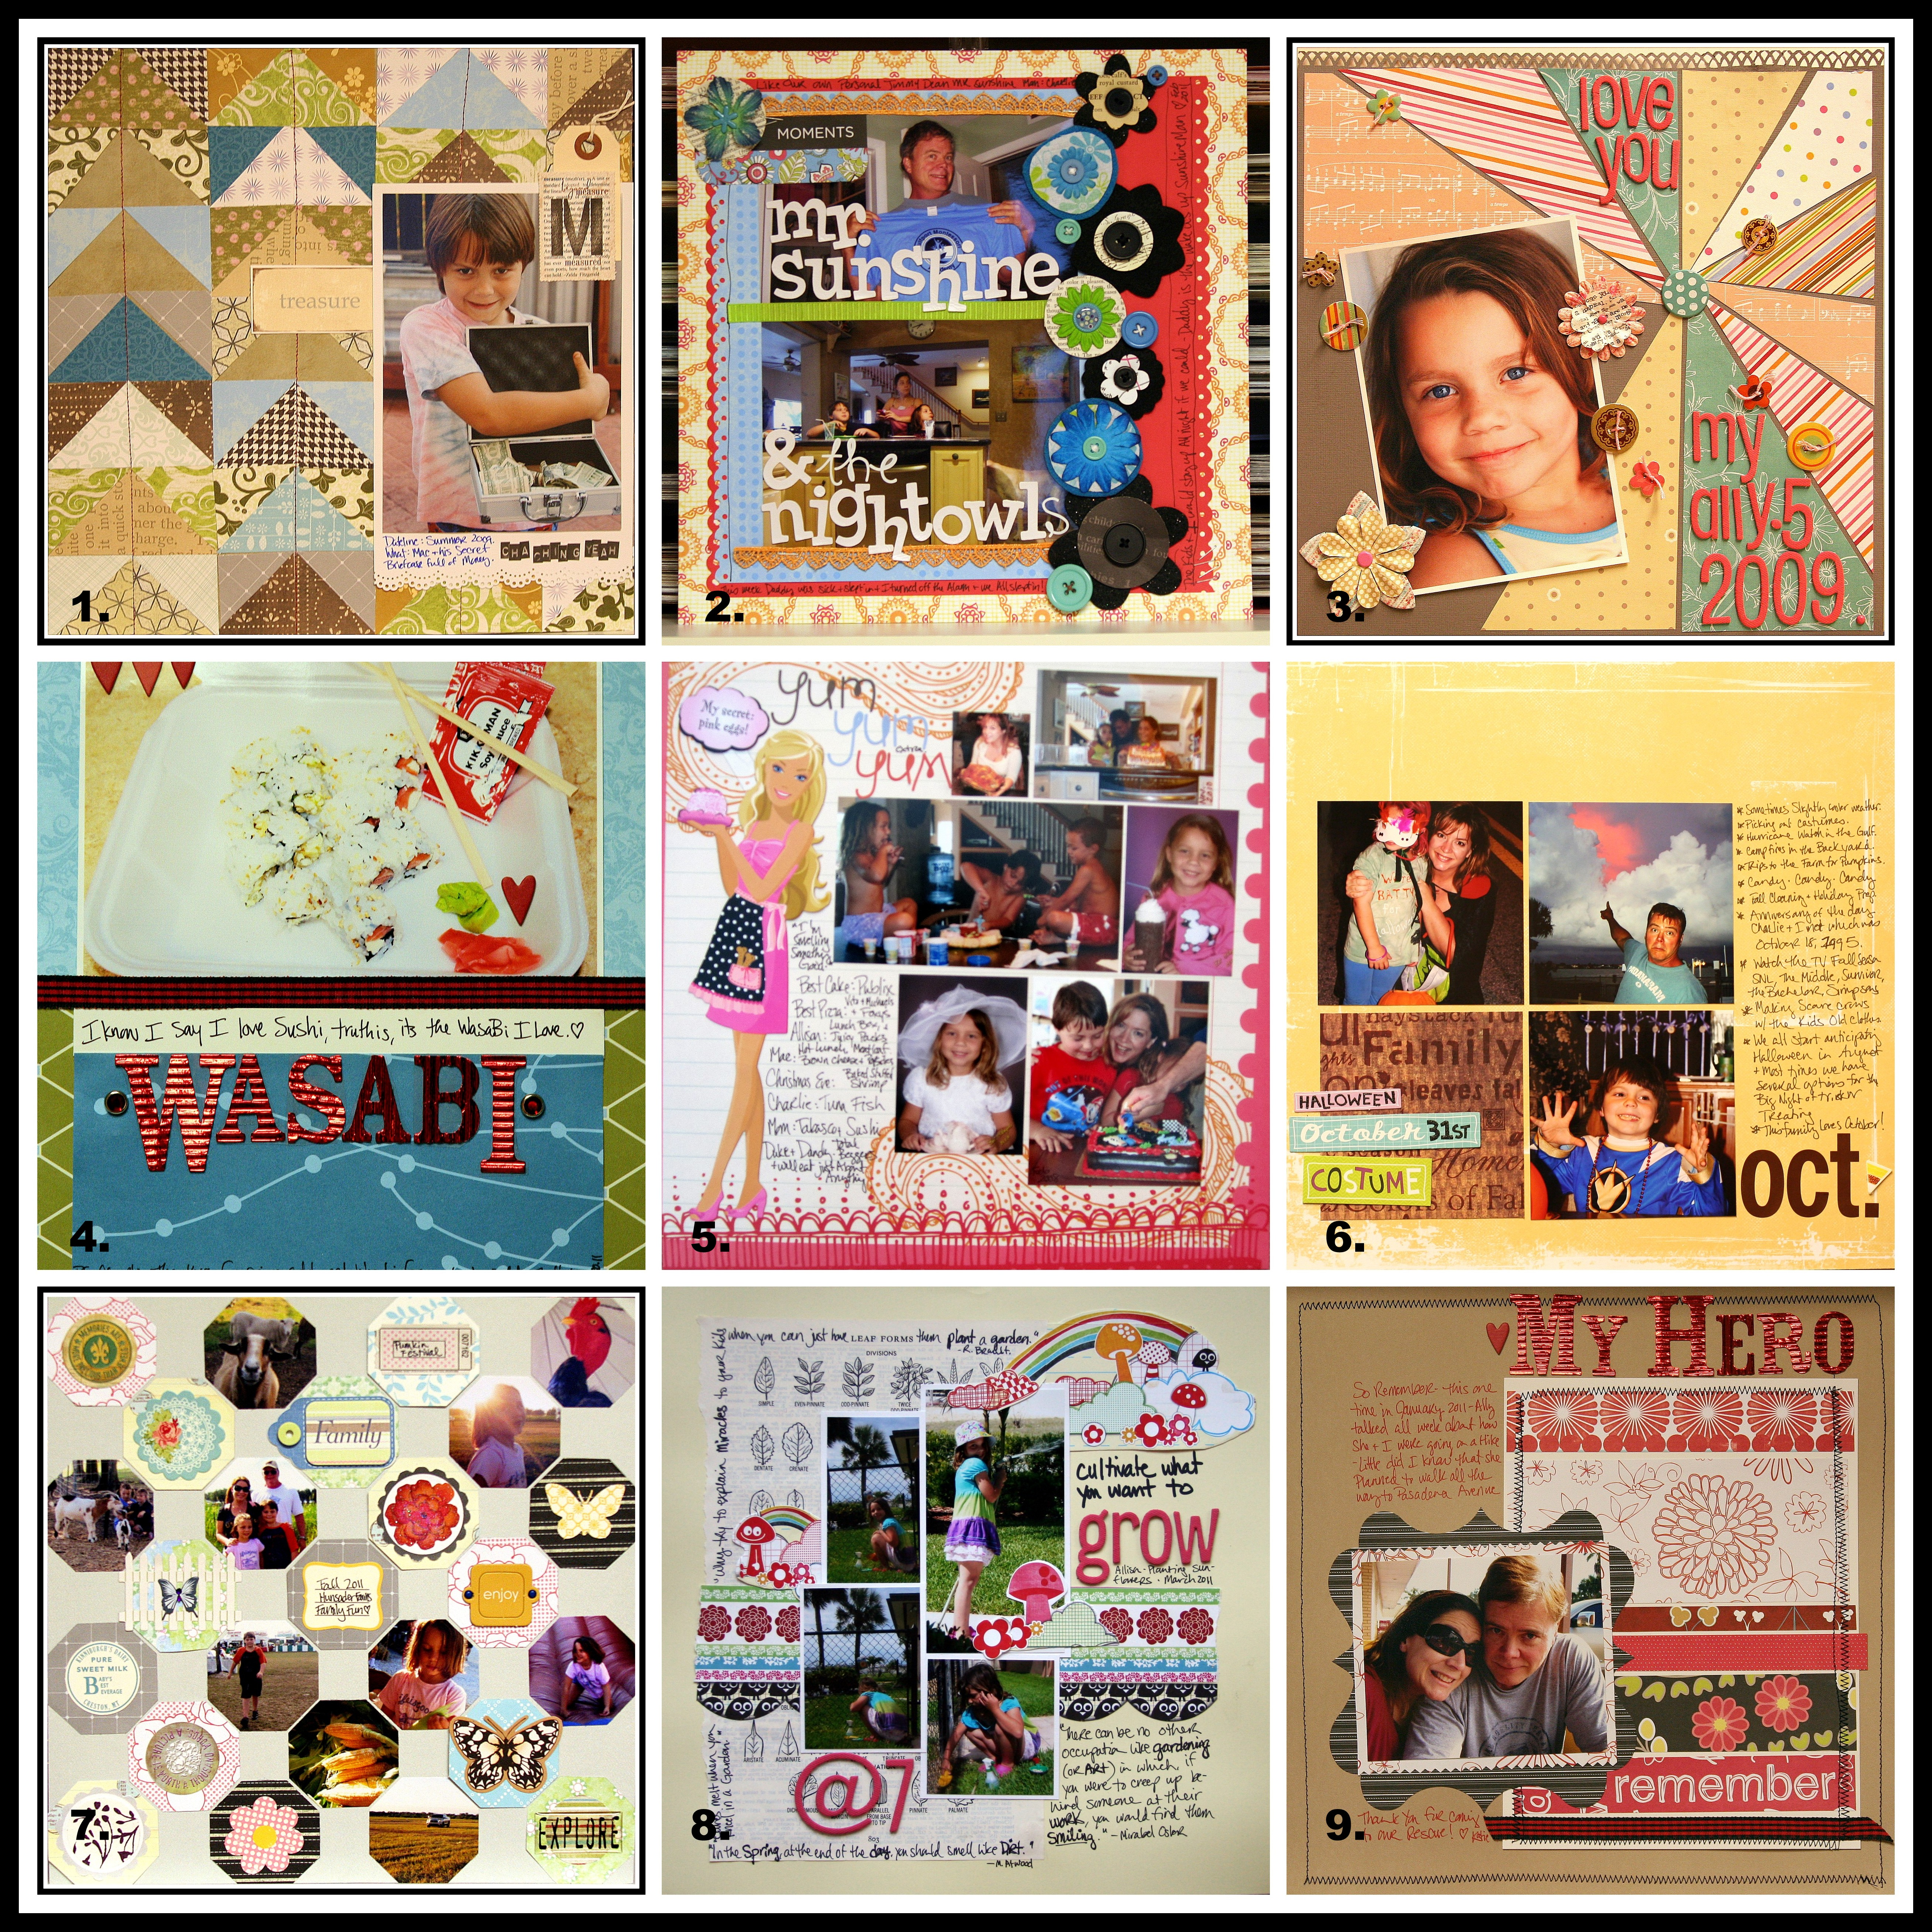 How to scrapbook on mac - Mac Backyard Treasure This Layout Includes A Lot Of Grain Colored Patterened Paper I Used A Square Punch On Random Bits Of Scraps And Then Cut Them On